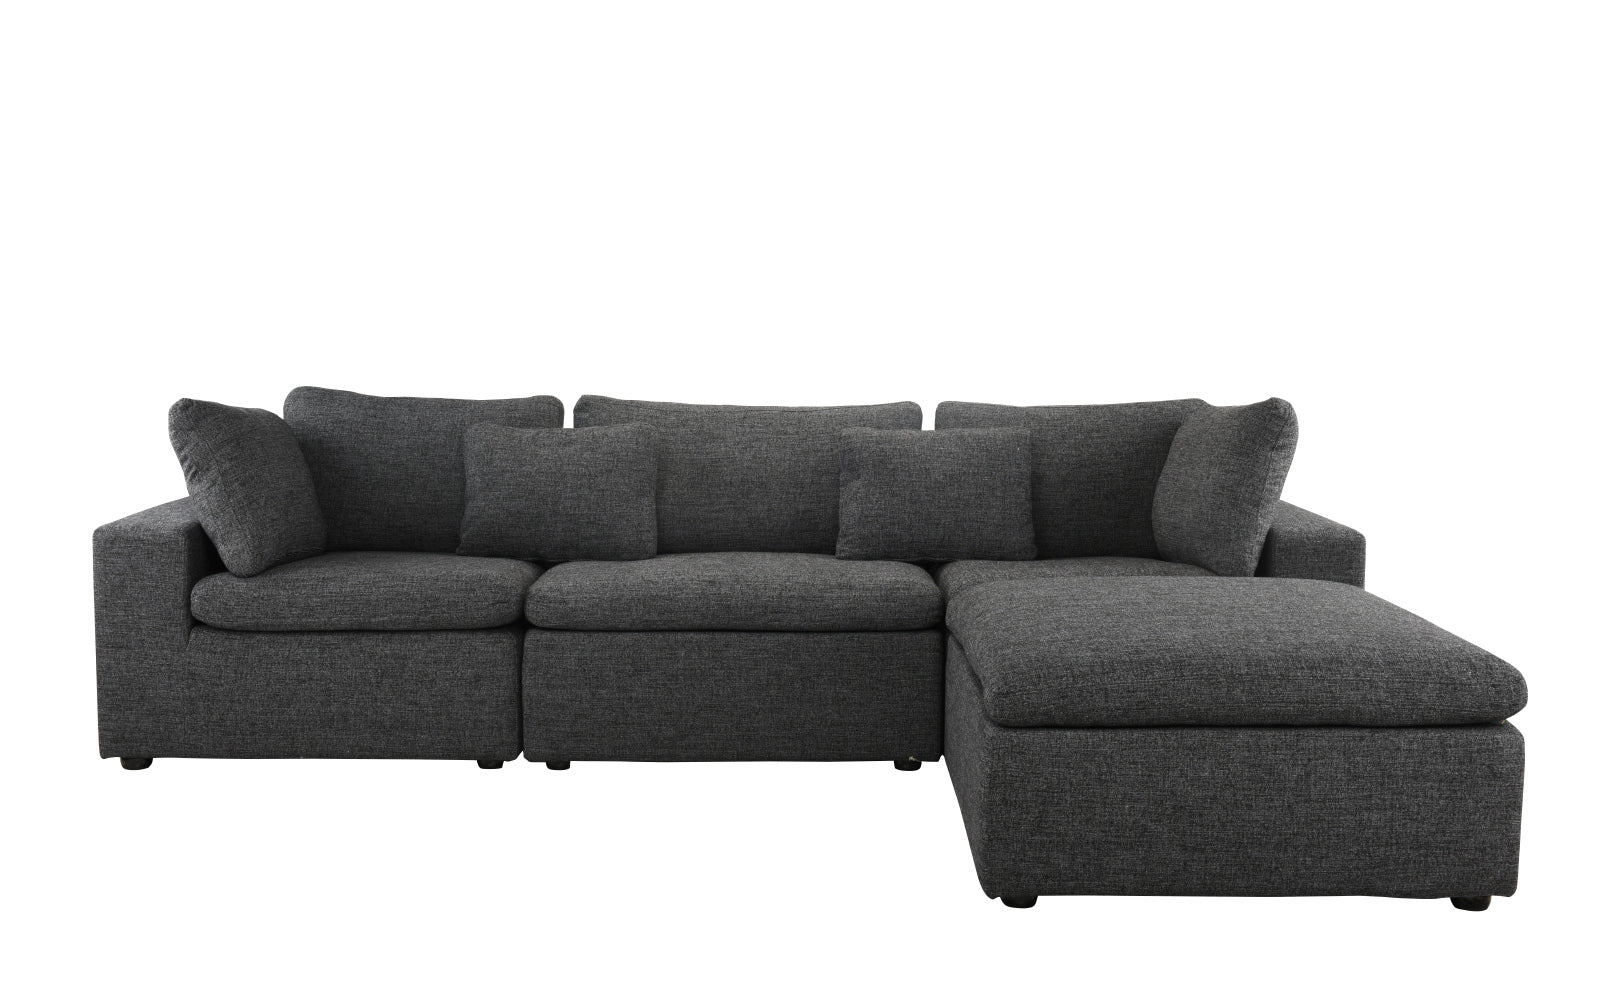 Delano Modern Low Profile Sectional Sofa with Chaise